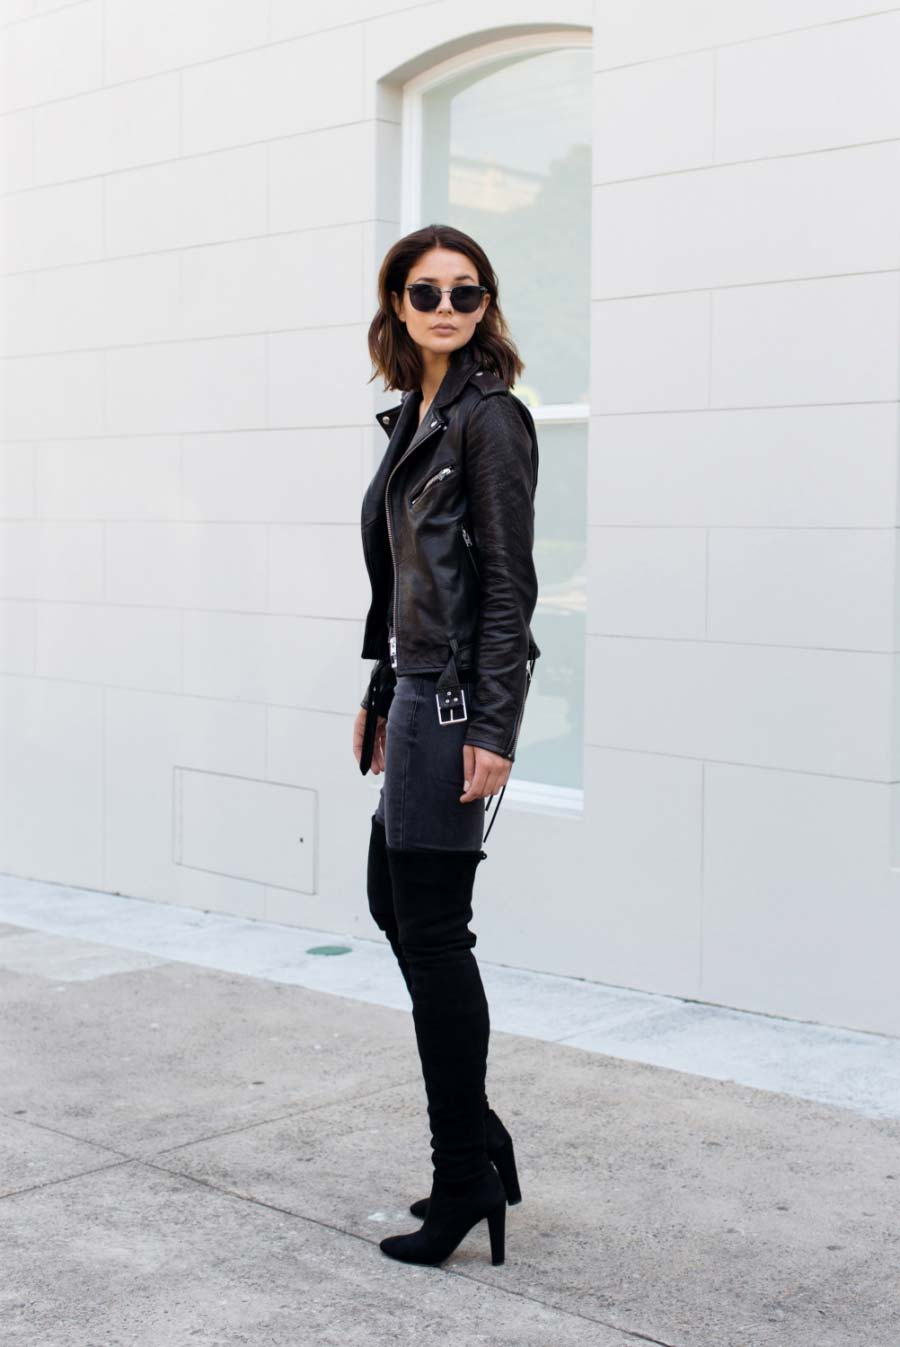 harper-and-harley_stuart-weitzman_over-the-knee-boots_leather-jacket_2-mj7dgj5j7iimyp3w32n7chdp0qubp4kdcrkx1qwe5a